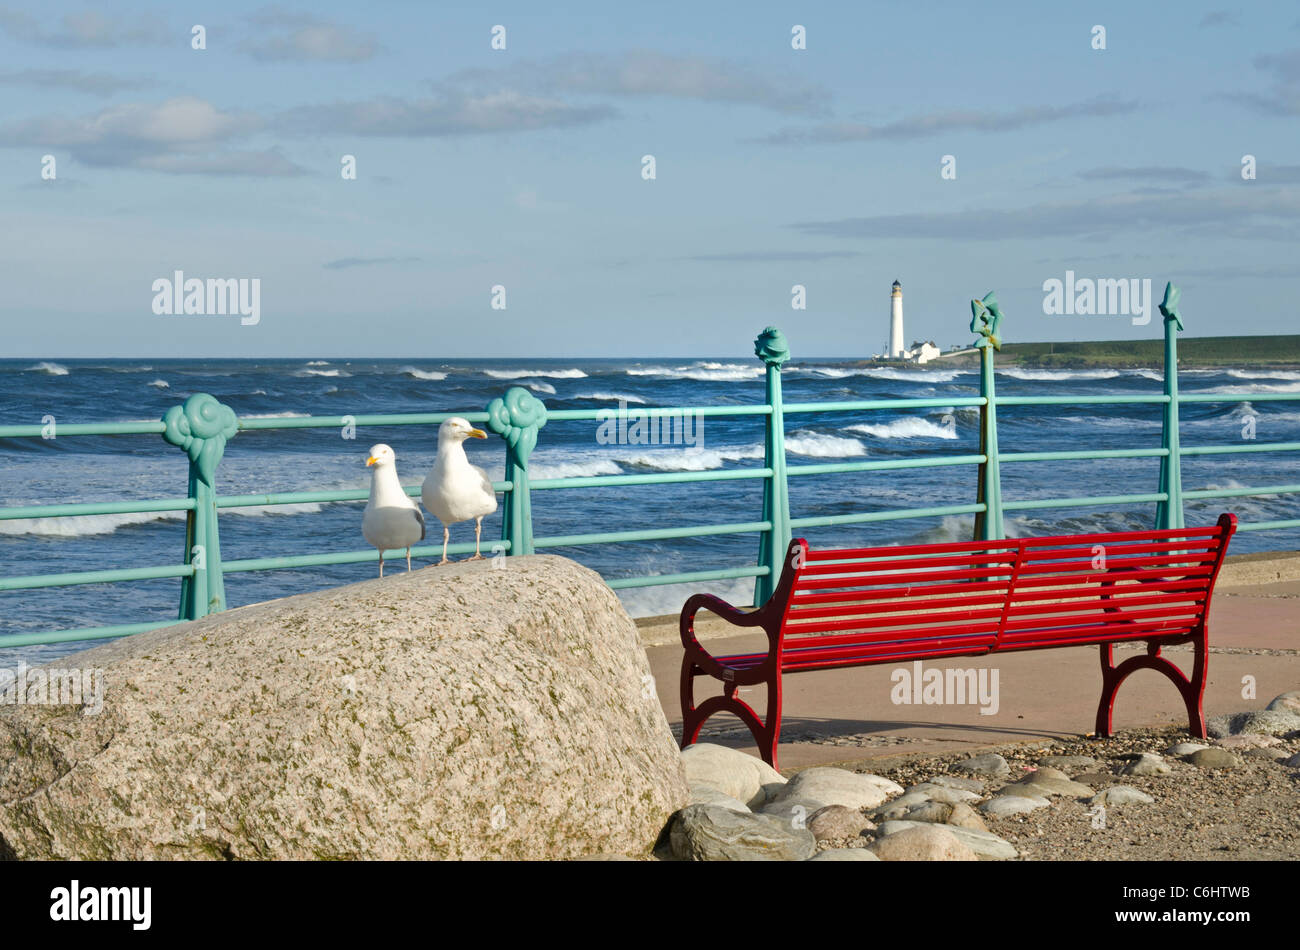 Two seagulls and red bench at promenade railings - Montrose seafront  Angus - Stock Image